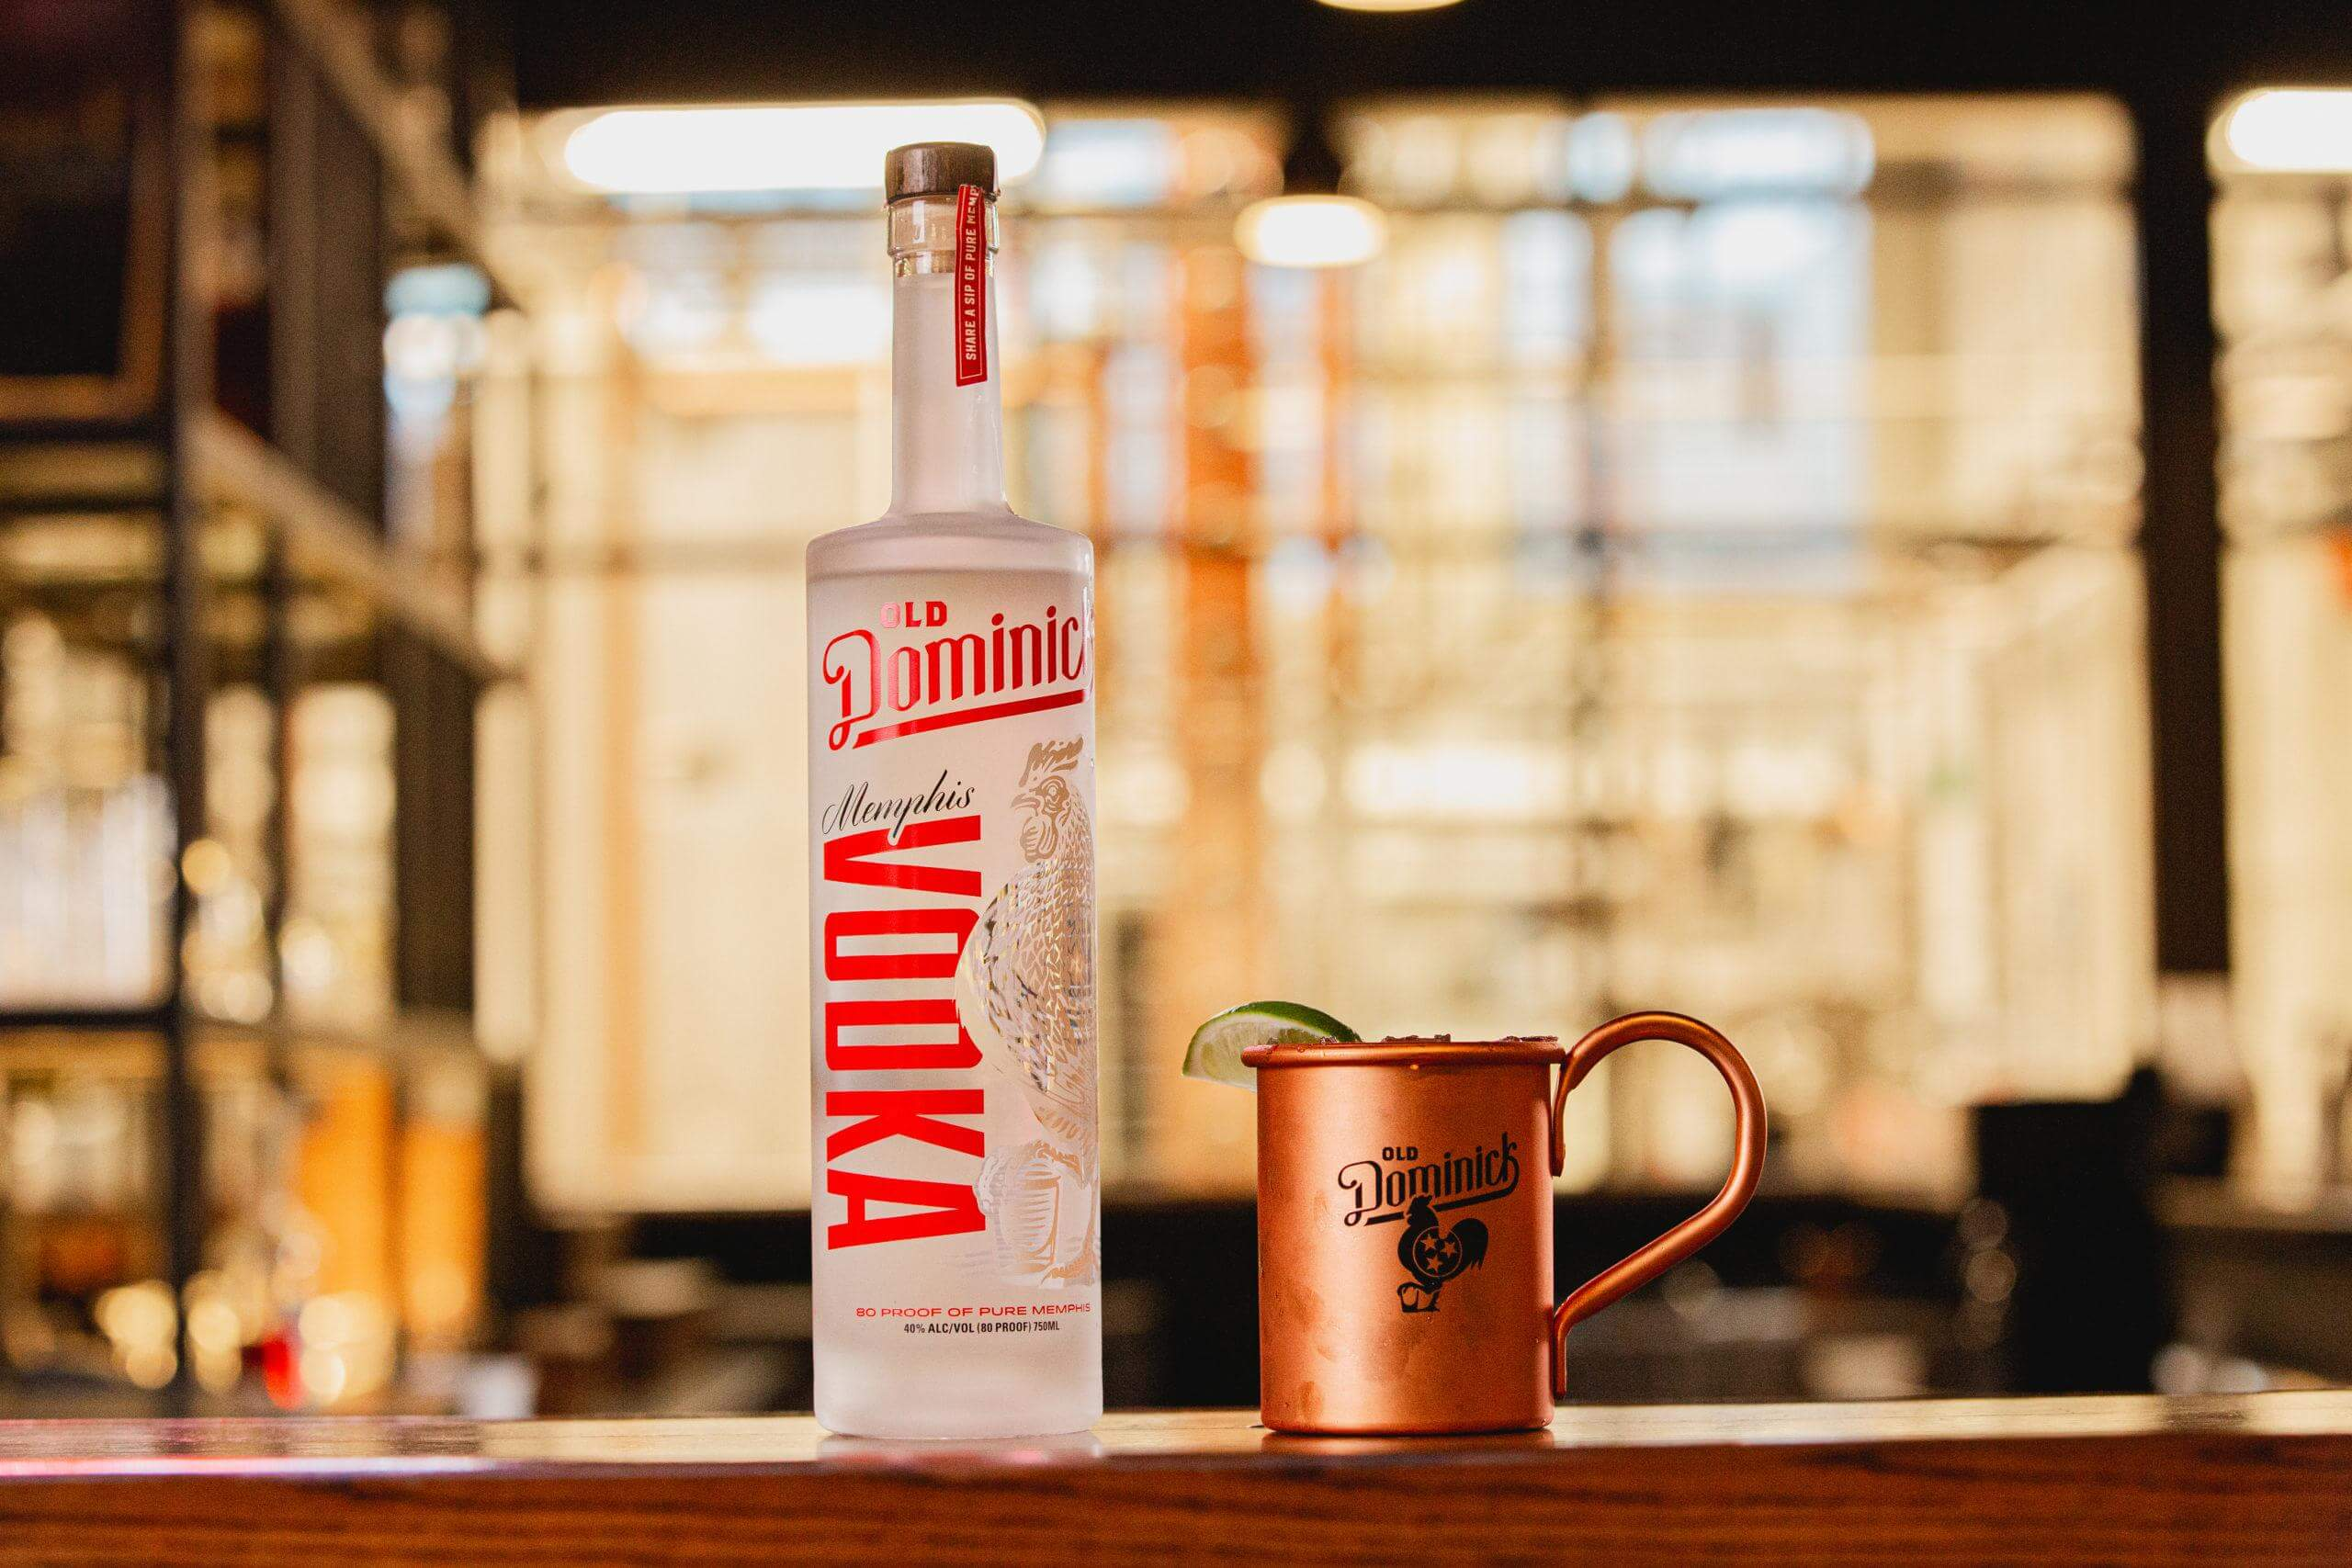 Memphis Vodka bottle and Moscow mule cocktail in copper mug